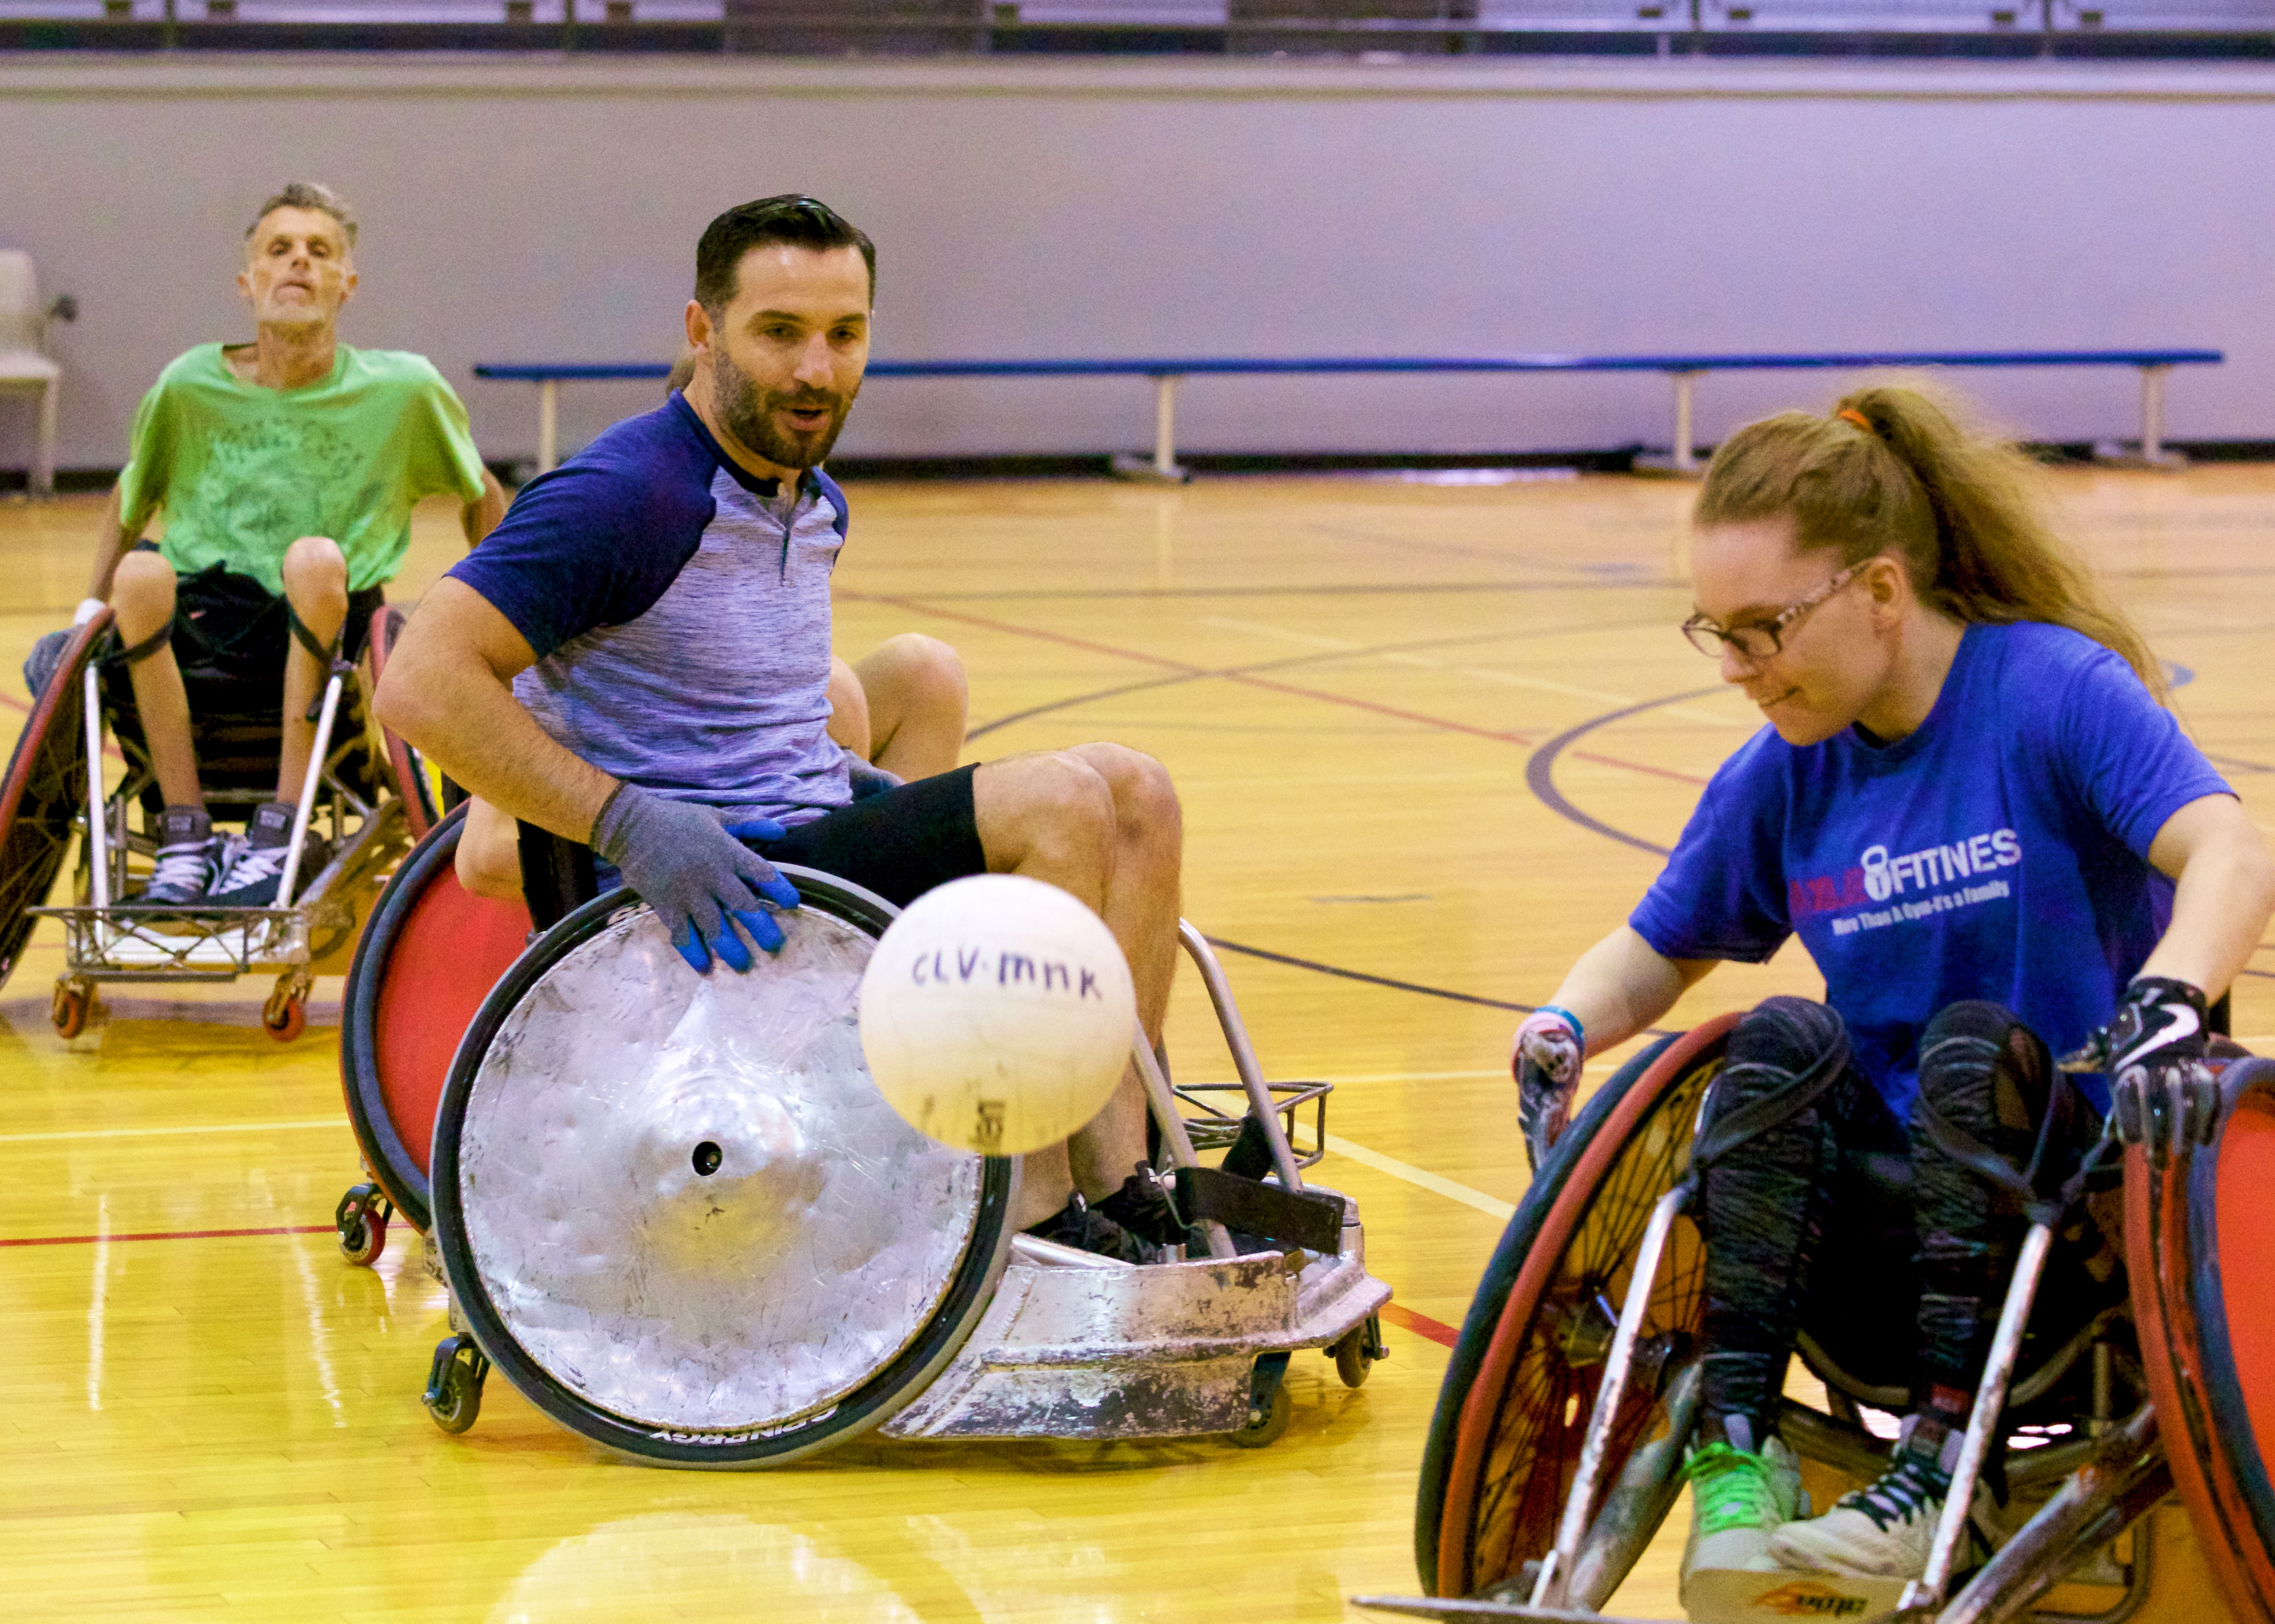 Wheel Chair Rugby 5 (2)